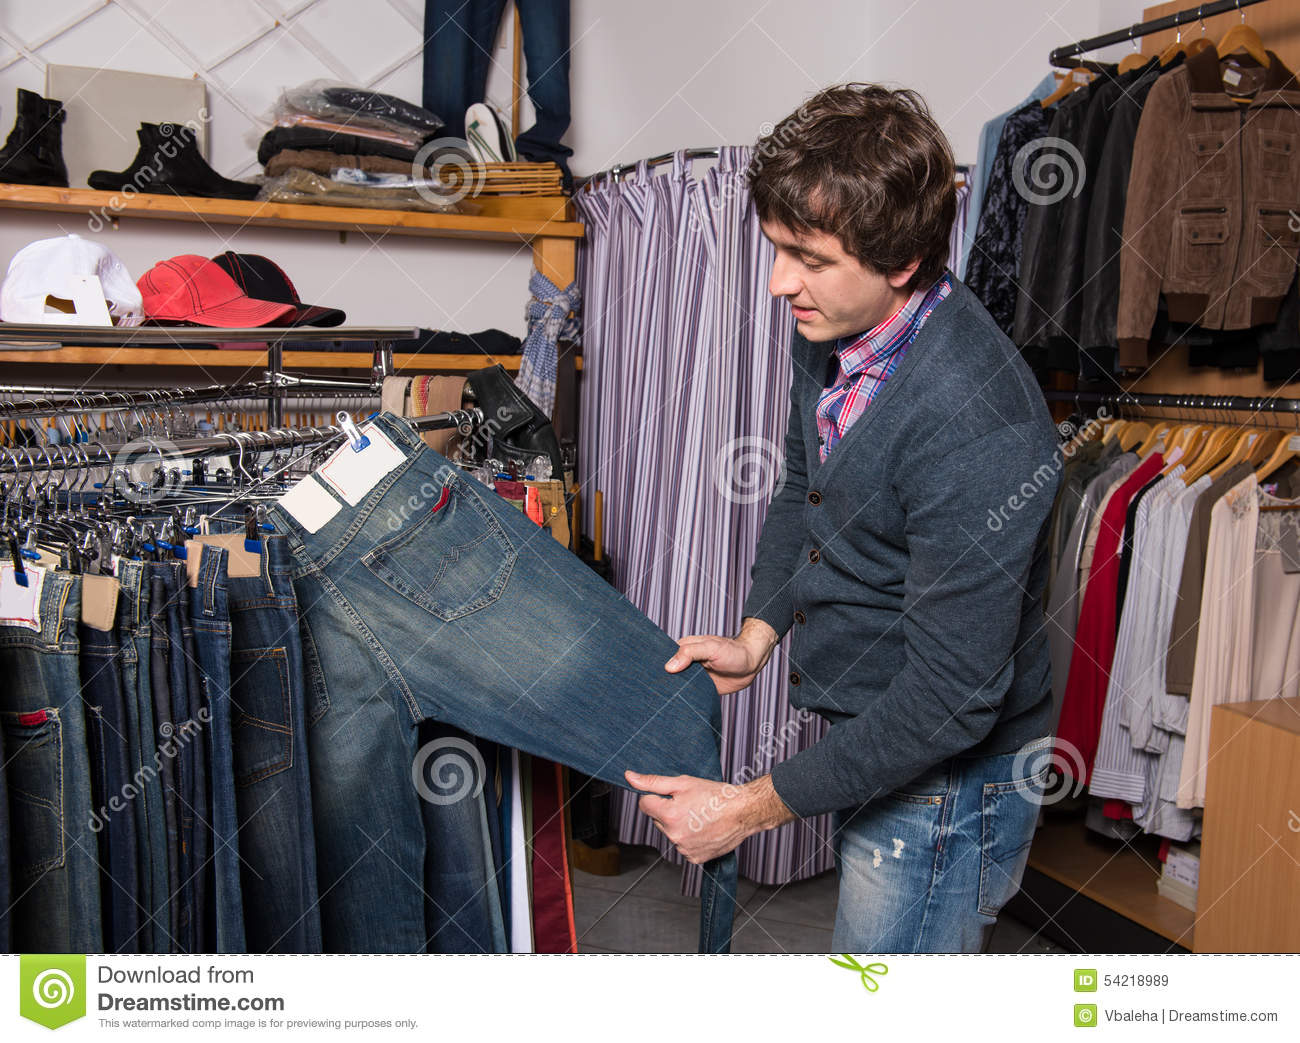 Handsome Man Choosing Jeans During Shopping Stock Photo - Image ...